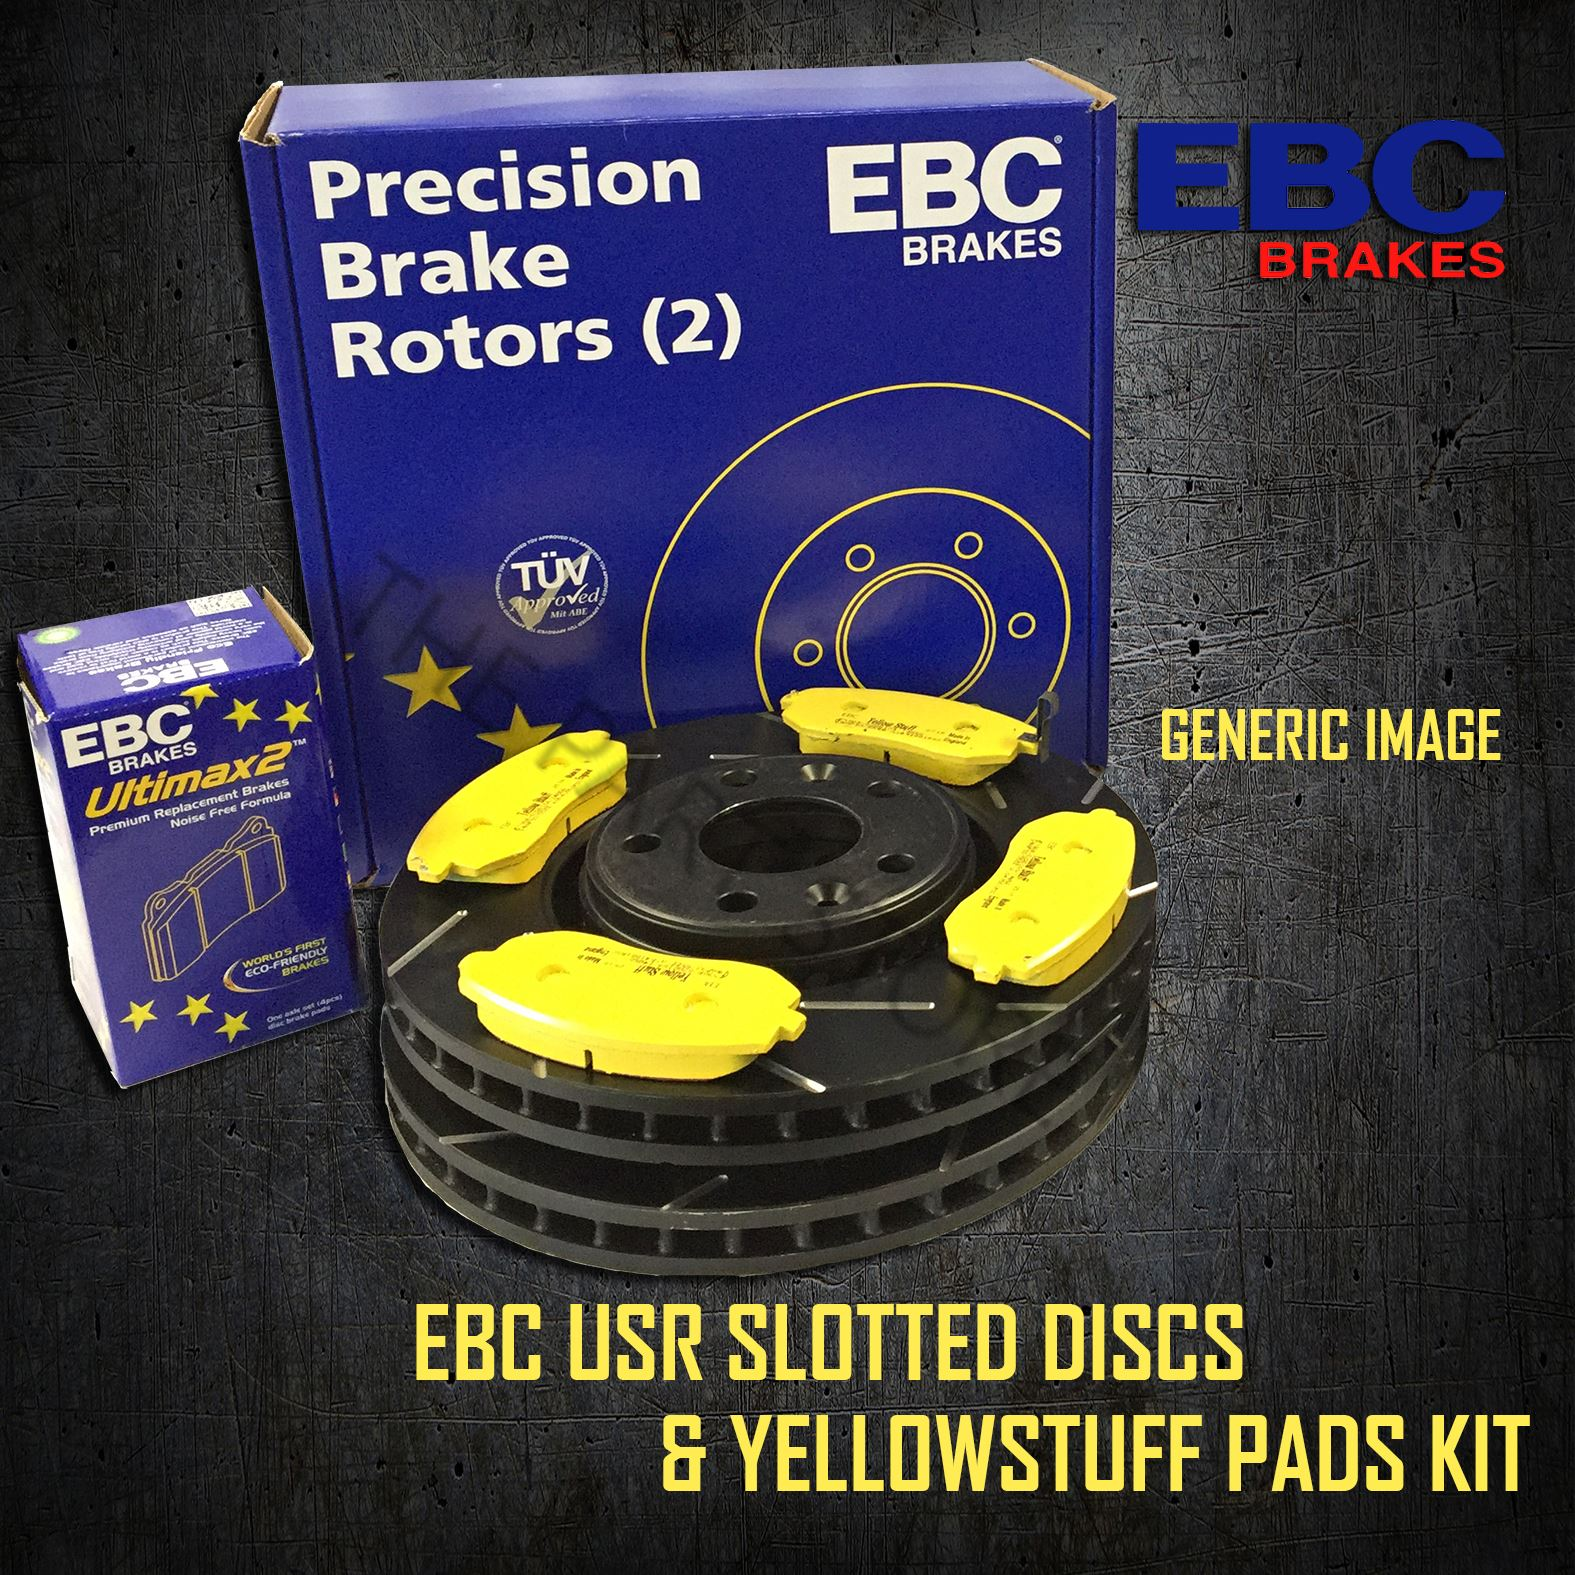 NEW EBC 258mm FRONT TURBO GROOVE GD DISCS AND GREENSTUFF PADS KIT